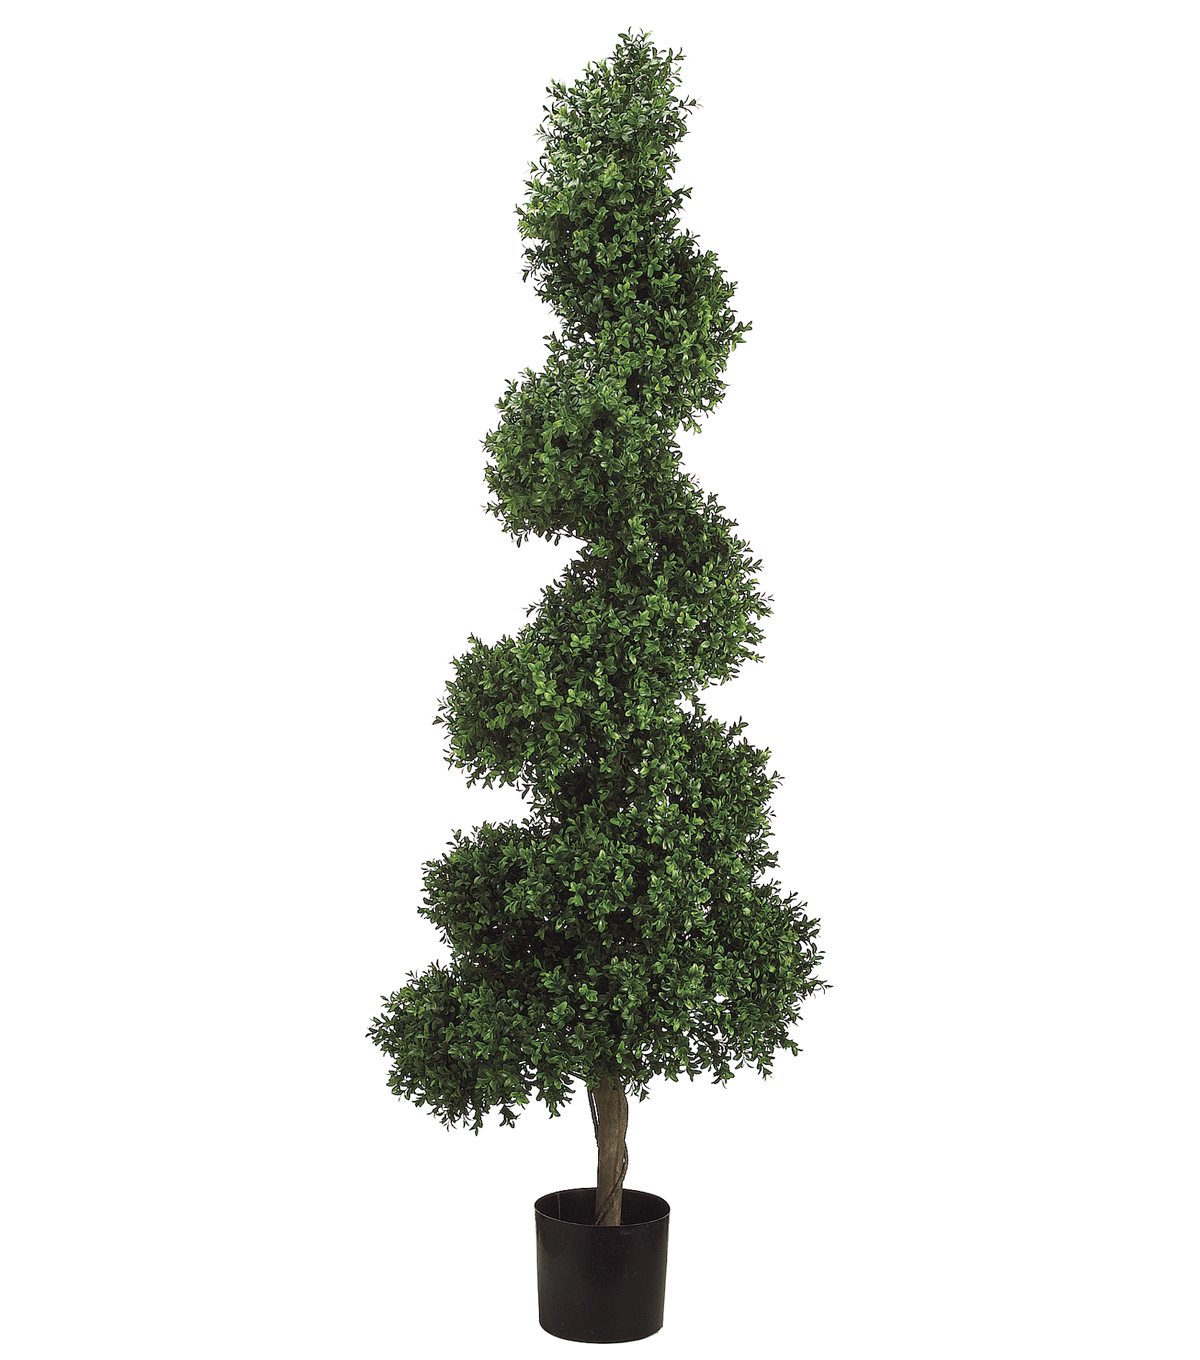 Spiral Boxwood Topiary in Plastic Pot 5.5\u0027